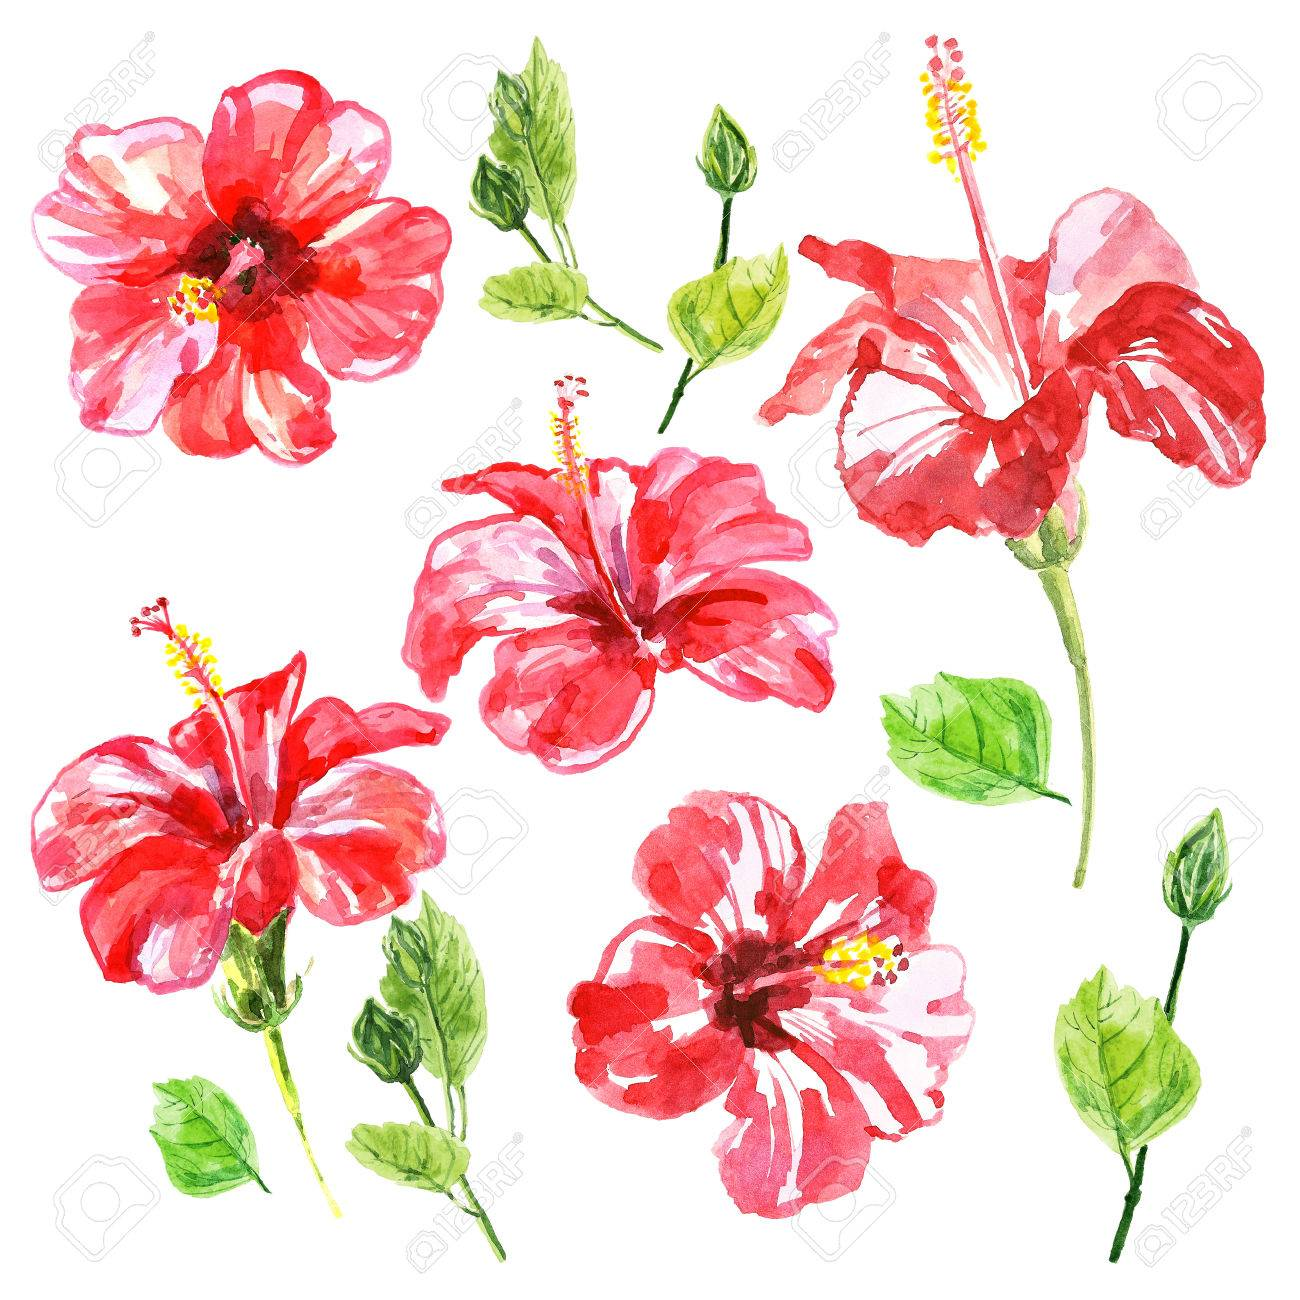 Set of red watercolor hibiscus flower illustration isolated stock illustration set of red watercolor hibiscus flower illustration isolated on white background colorful floral collection with leaves and flowers izmirmasajfo